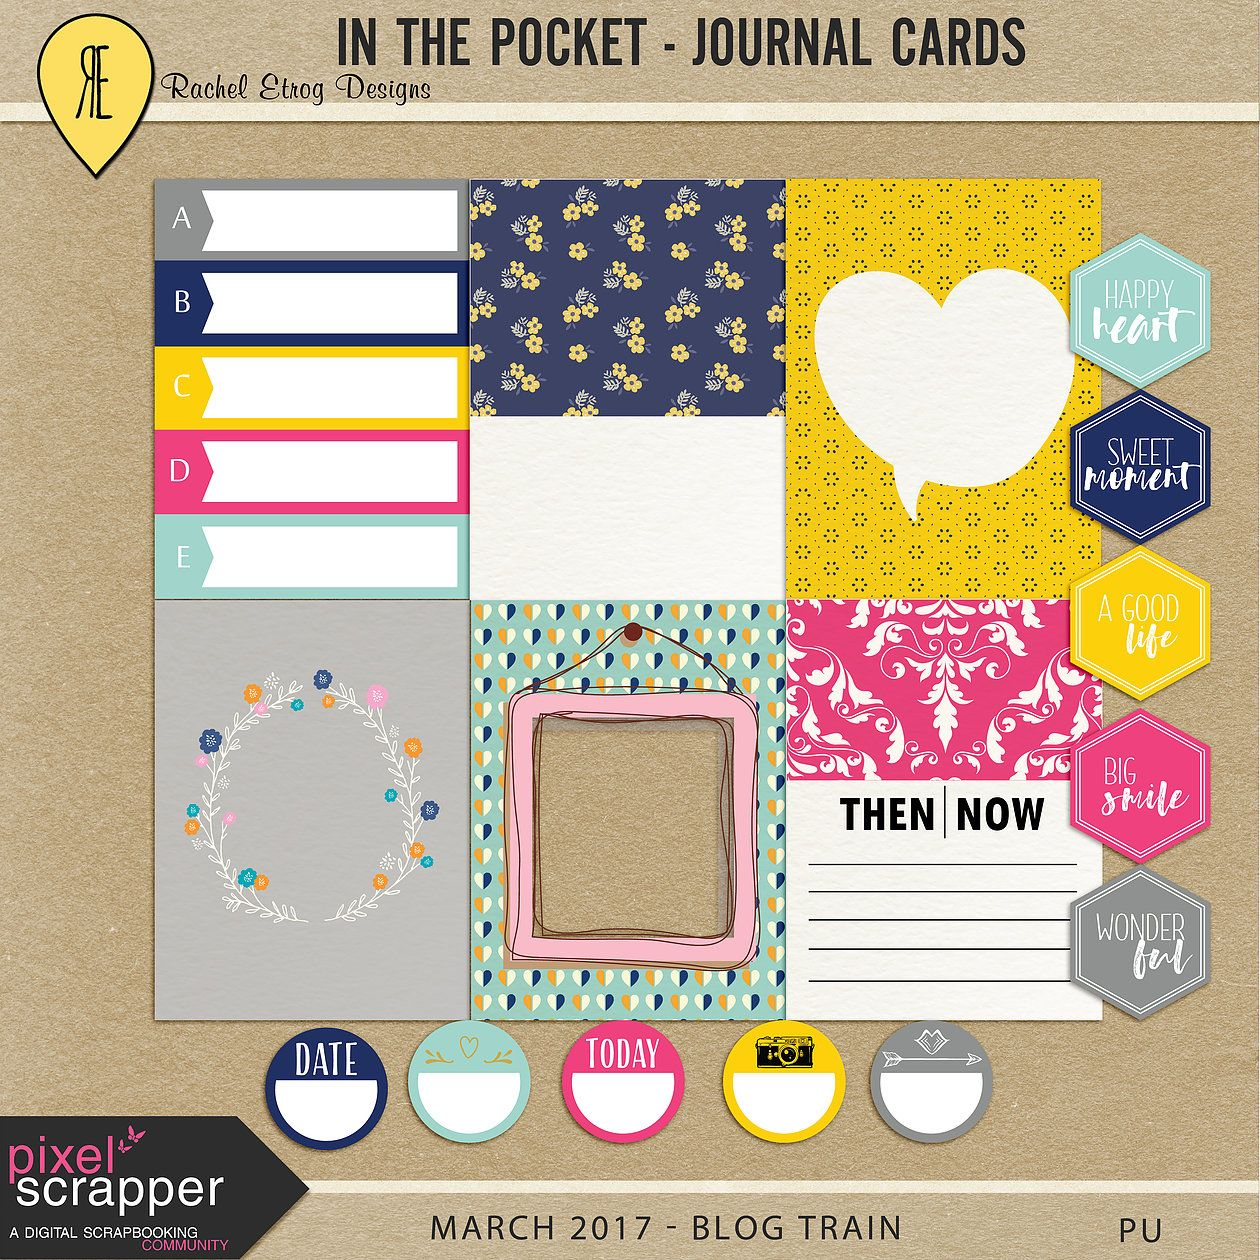 FREE Printable Journal Cards from Rachel Etrog Designs  | Pixel Scrapper March 2017 Blog Train